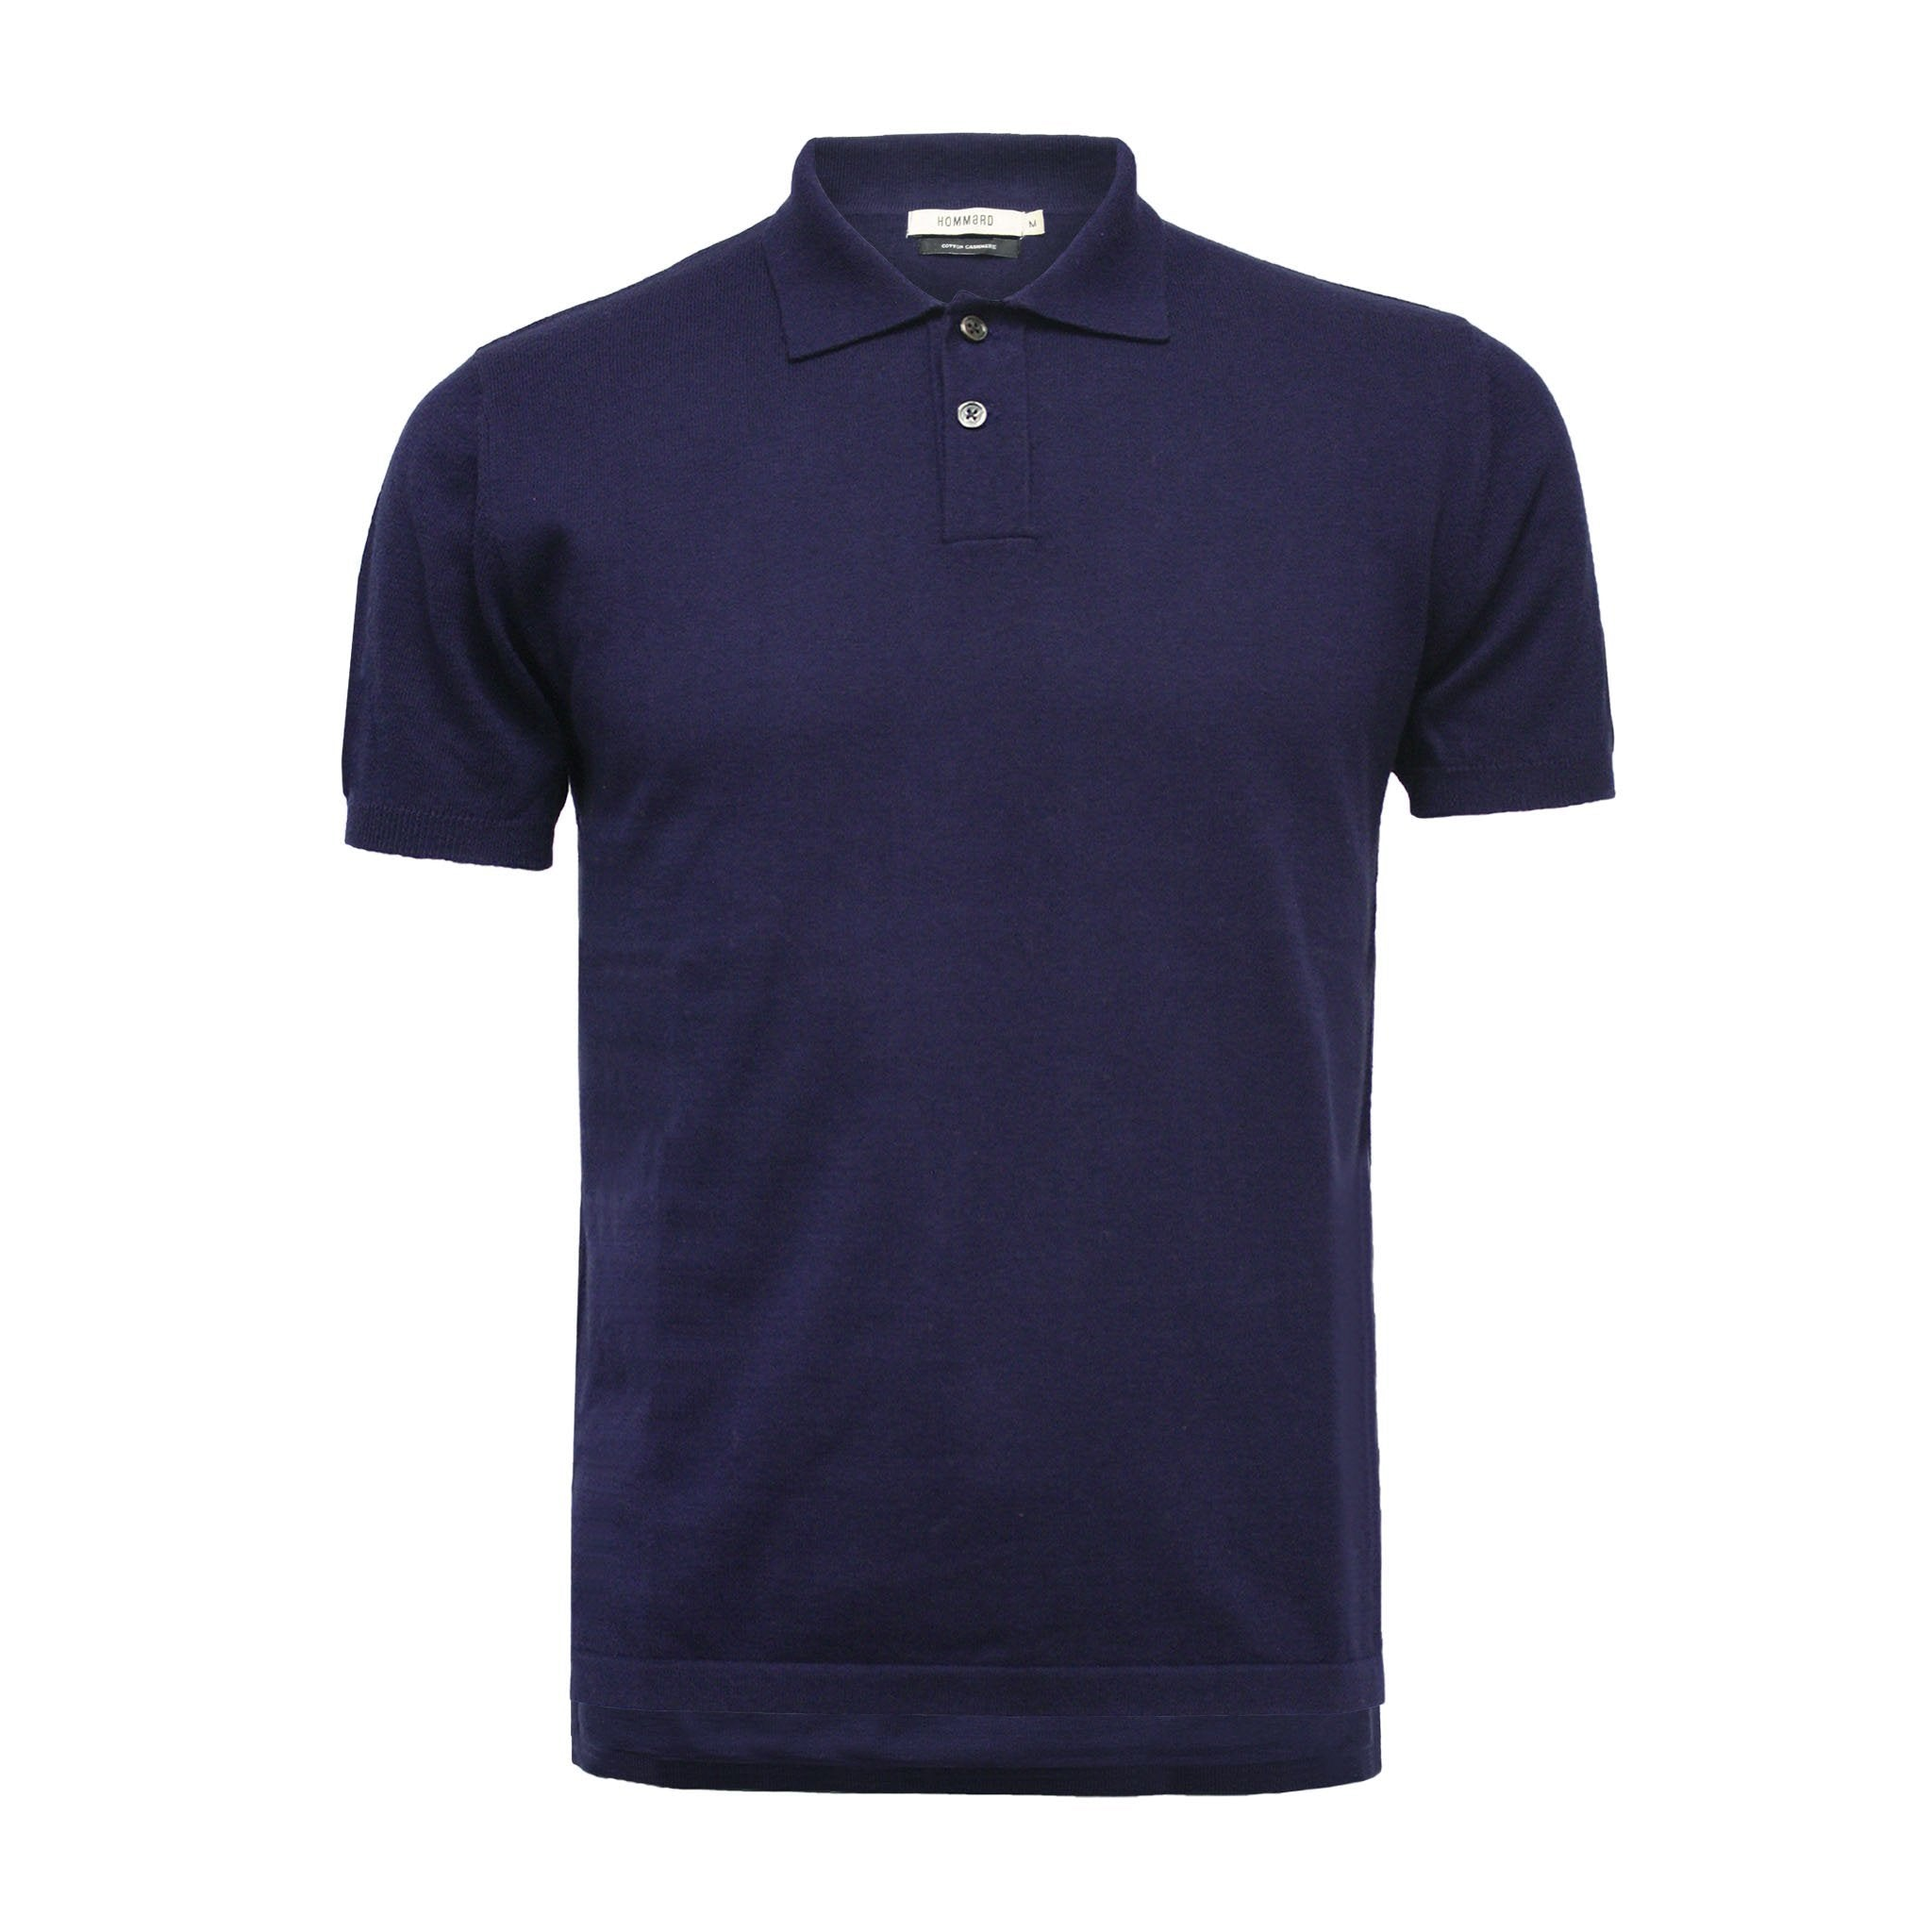 Navy Men´s Cashmere Polo Shirt Hampton in Cotton Cashmere - Hommard